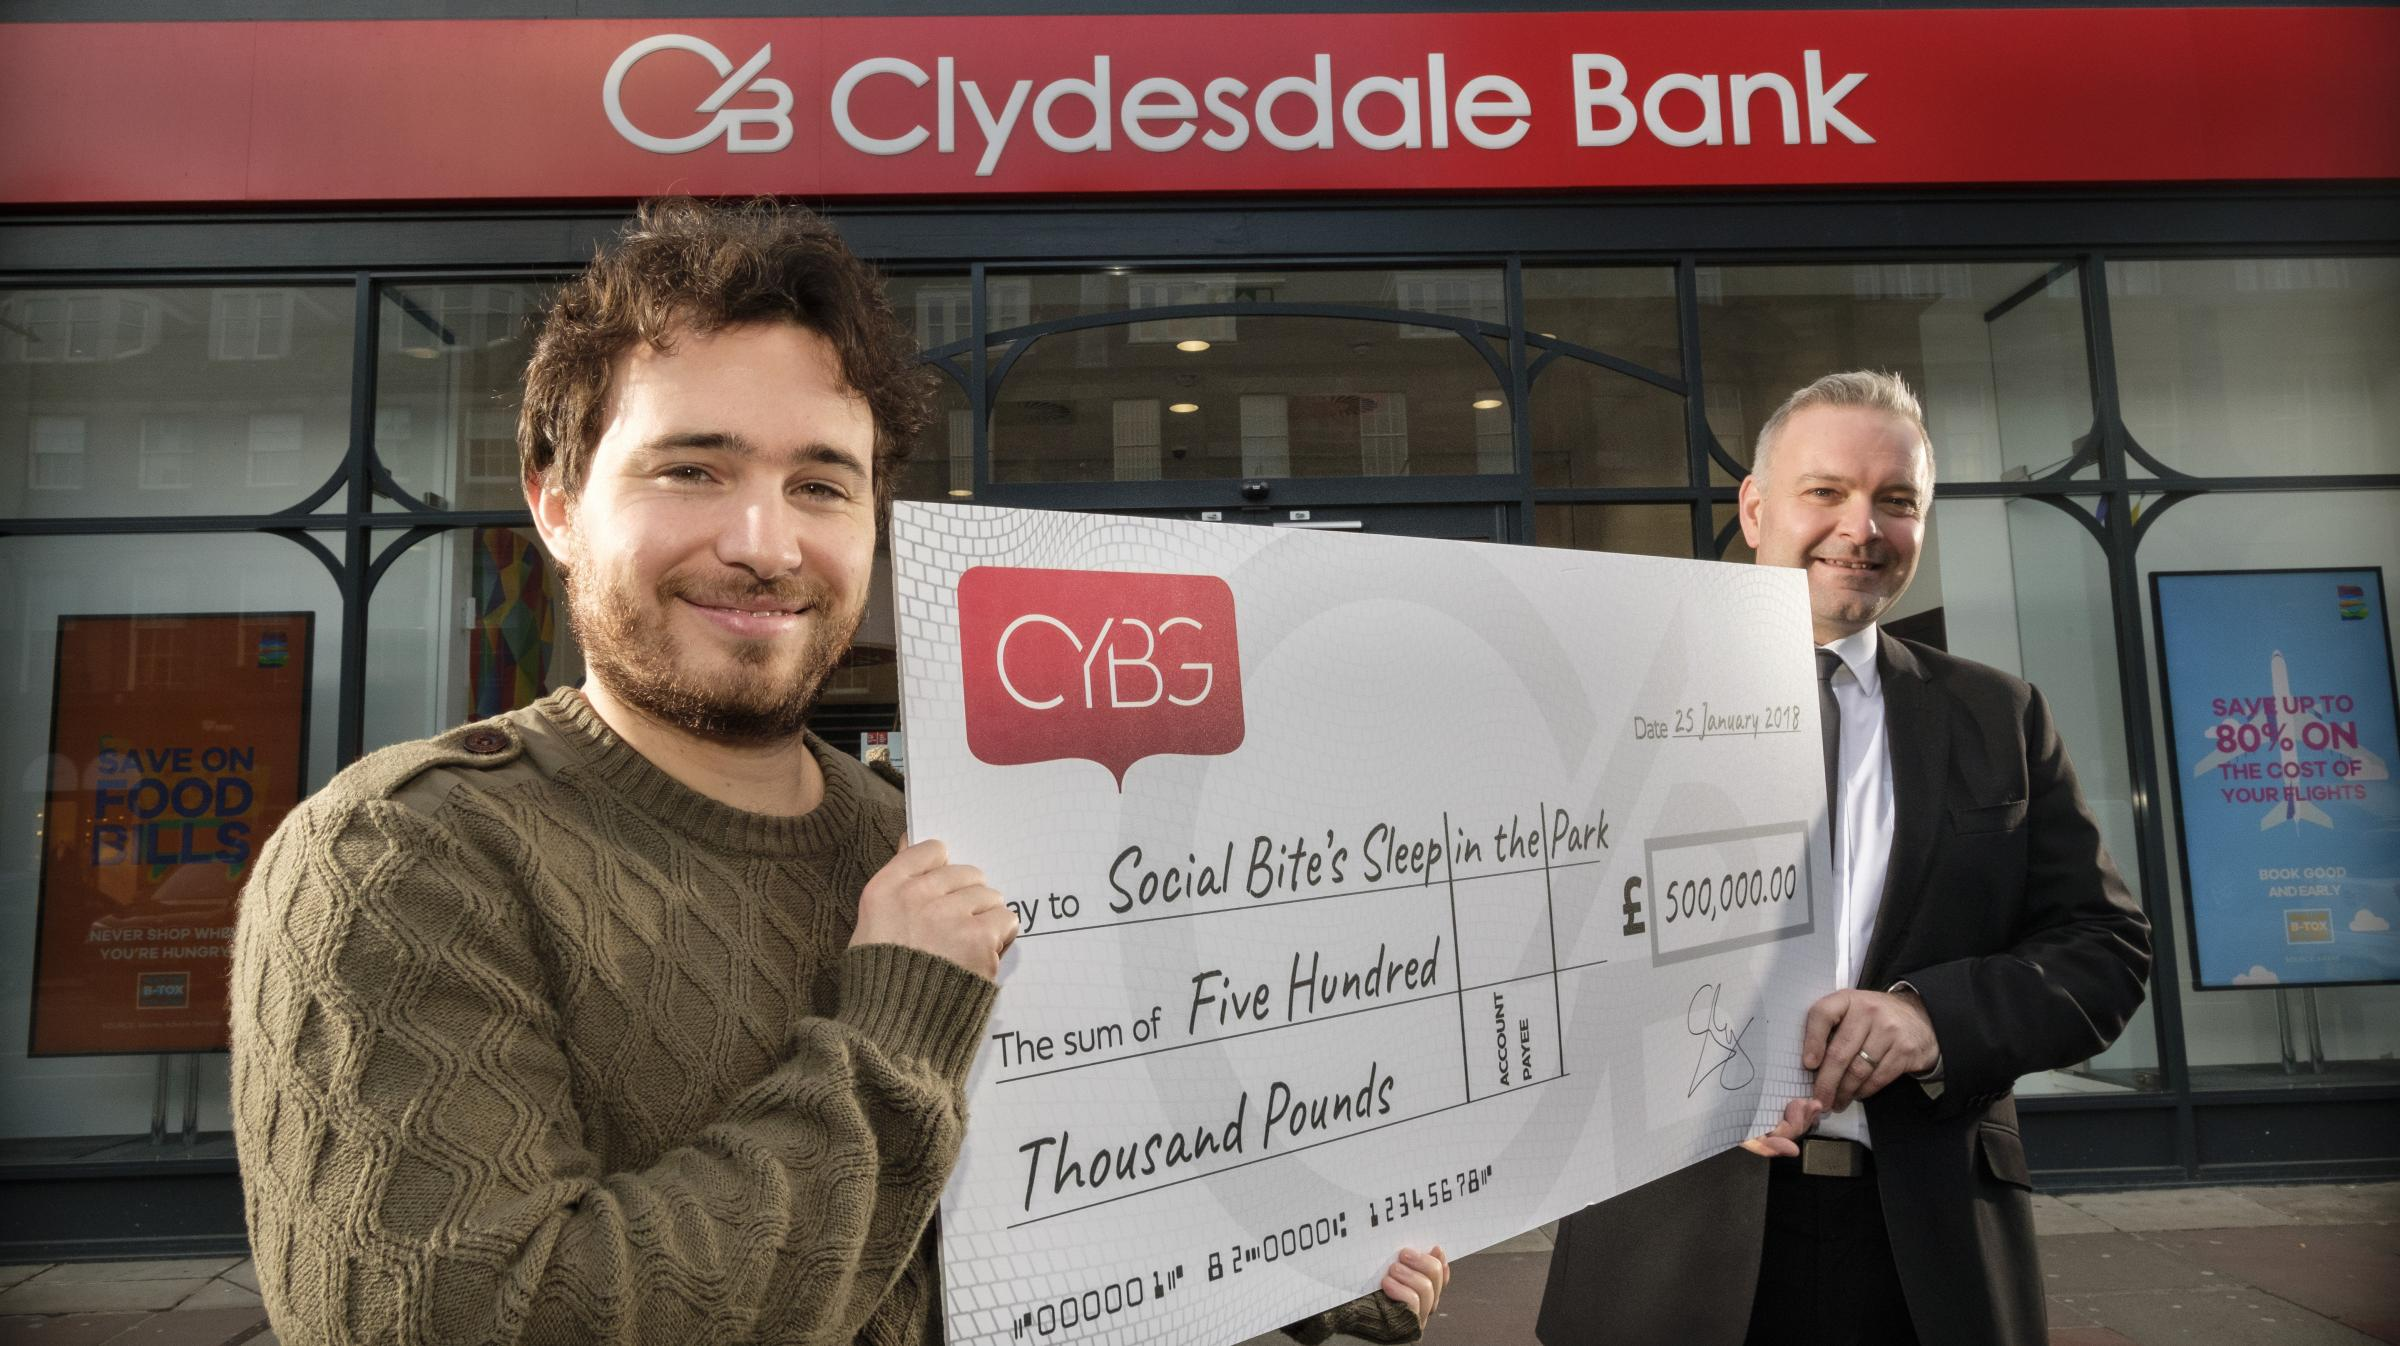 Gerry Magee of CYBG presented the cheque to Social Bite's Josh Littlejohn (left)